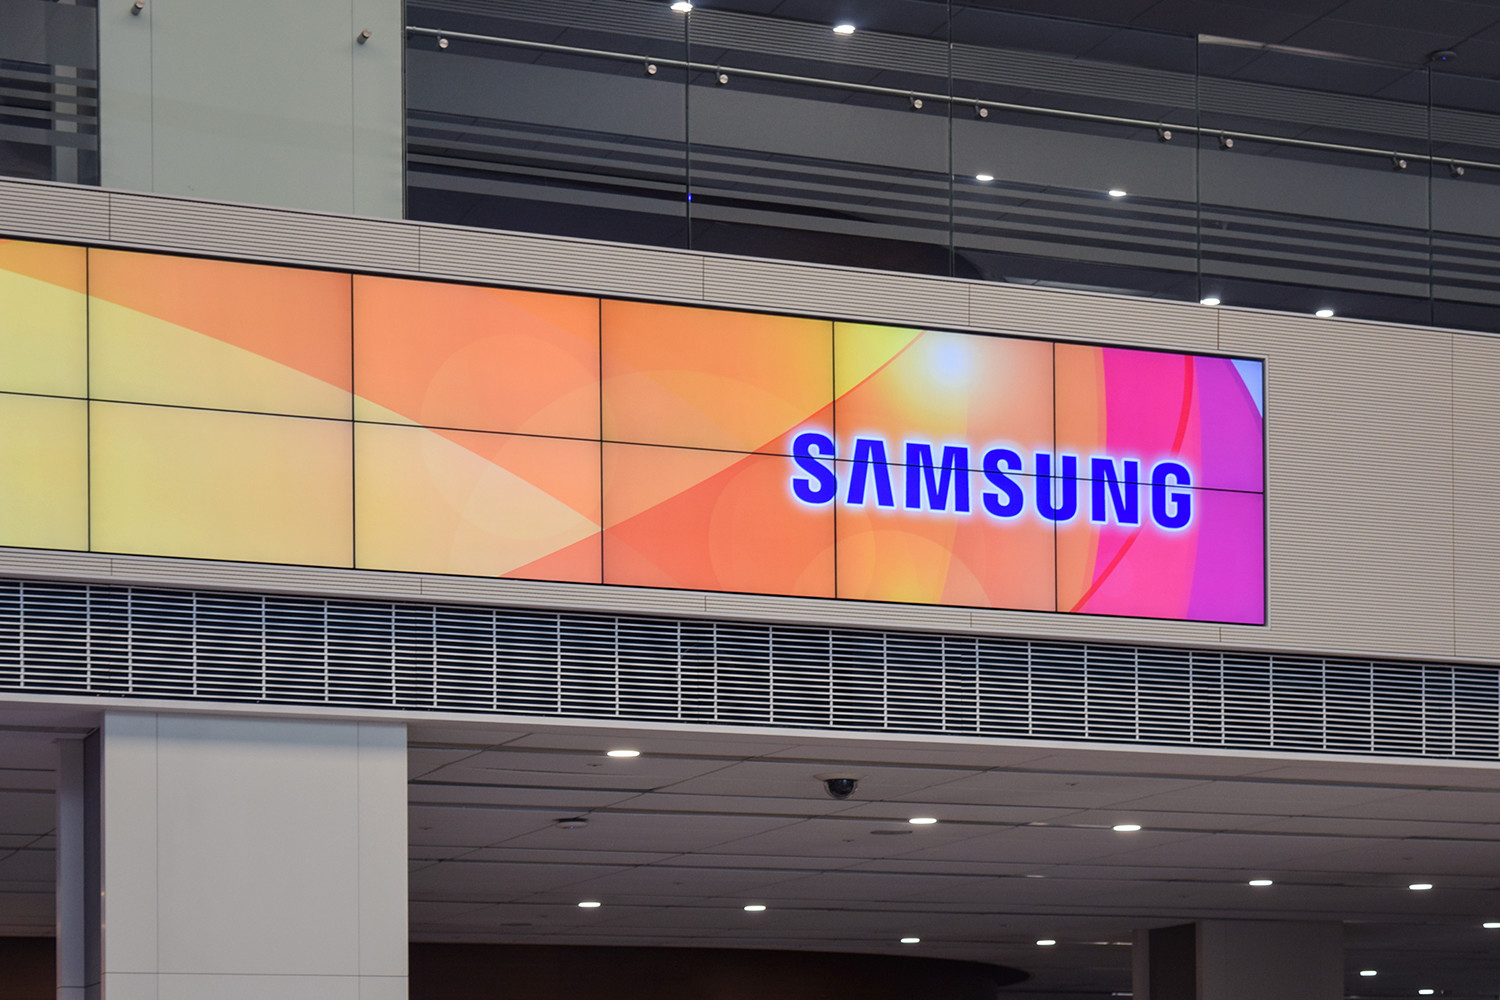 Samsung's Tizen is riddled with security flaws, amateurishly written